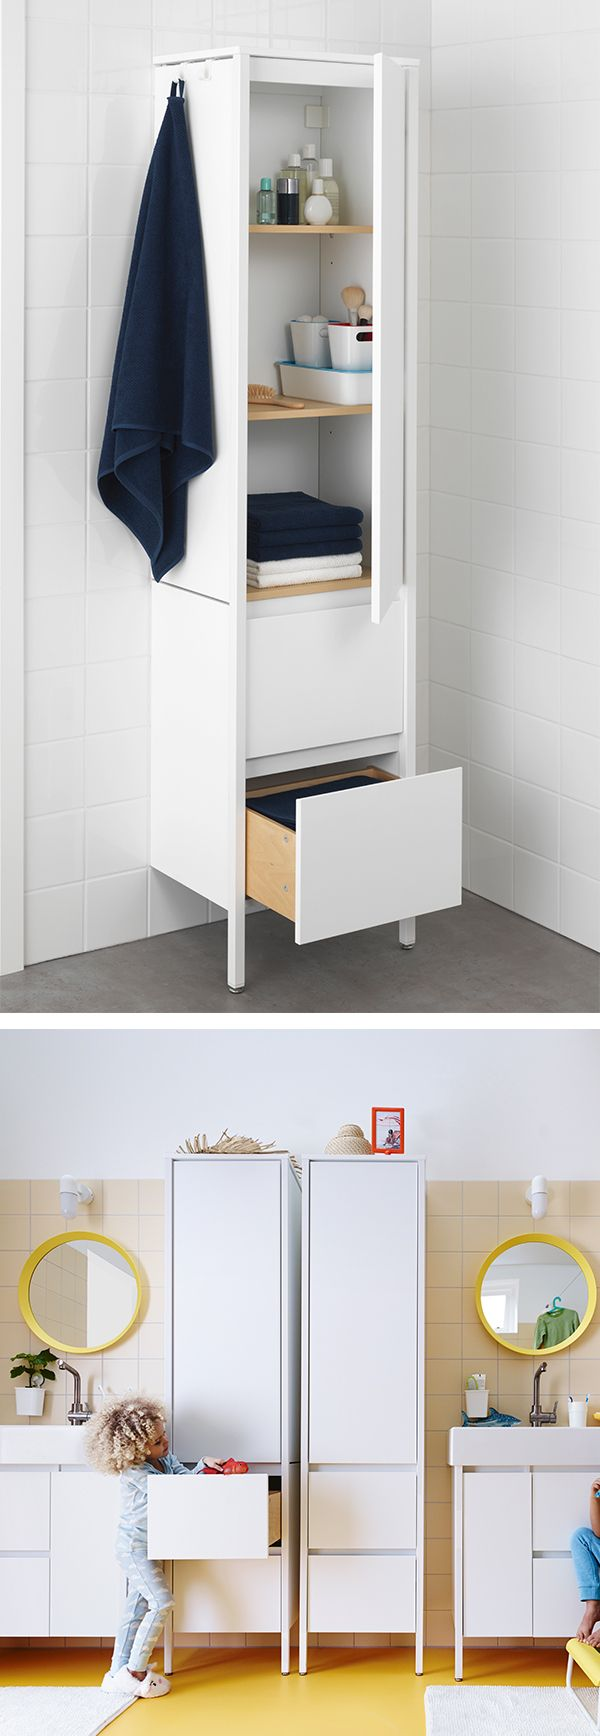 bathroom bathroom ideas ikea cabinets extra storage ikea hacks tall